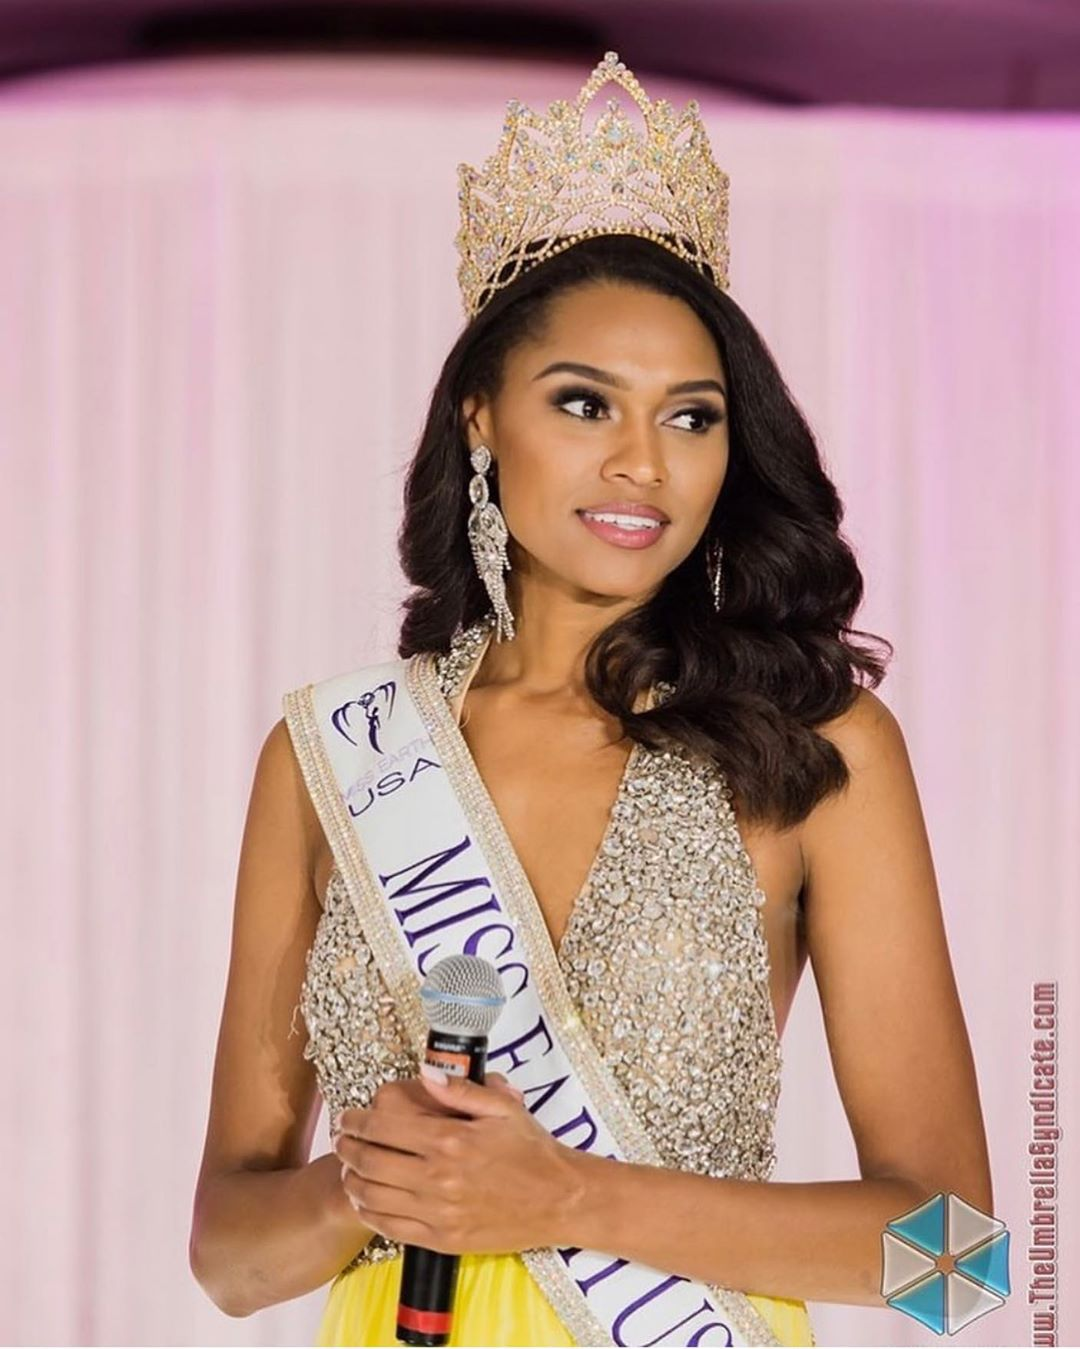 emanii davis, miss earth - air 2019. 67581210